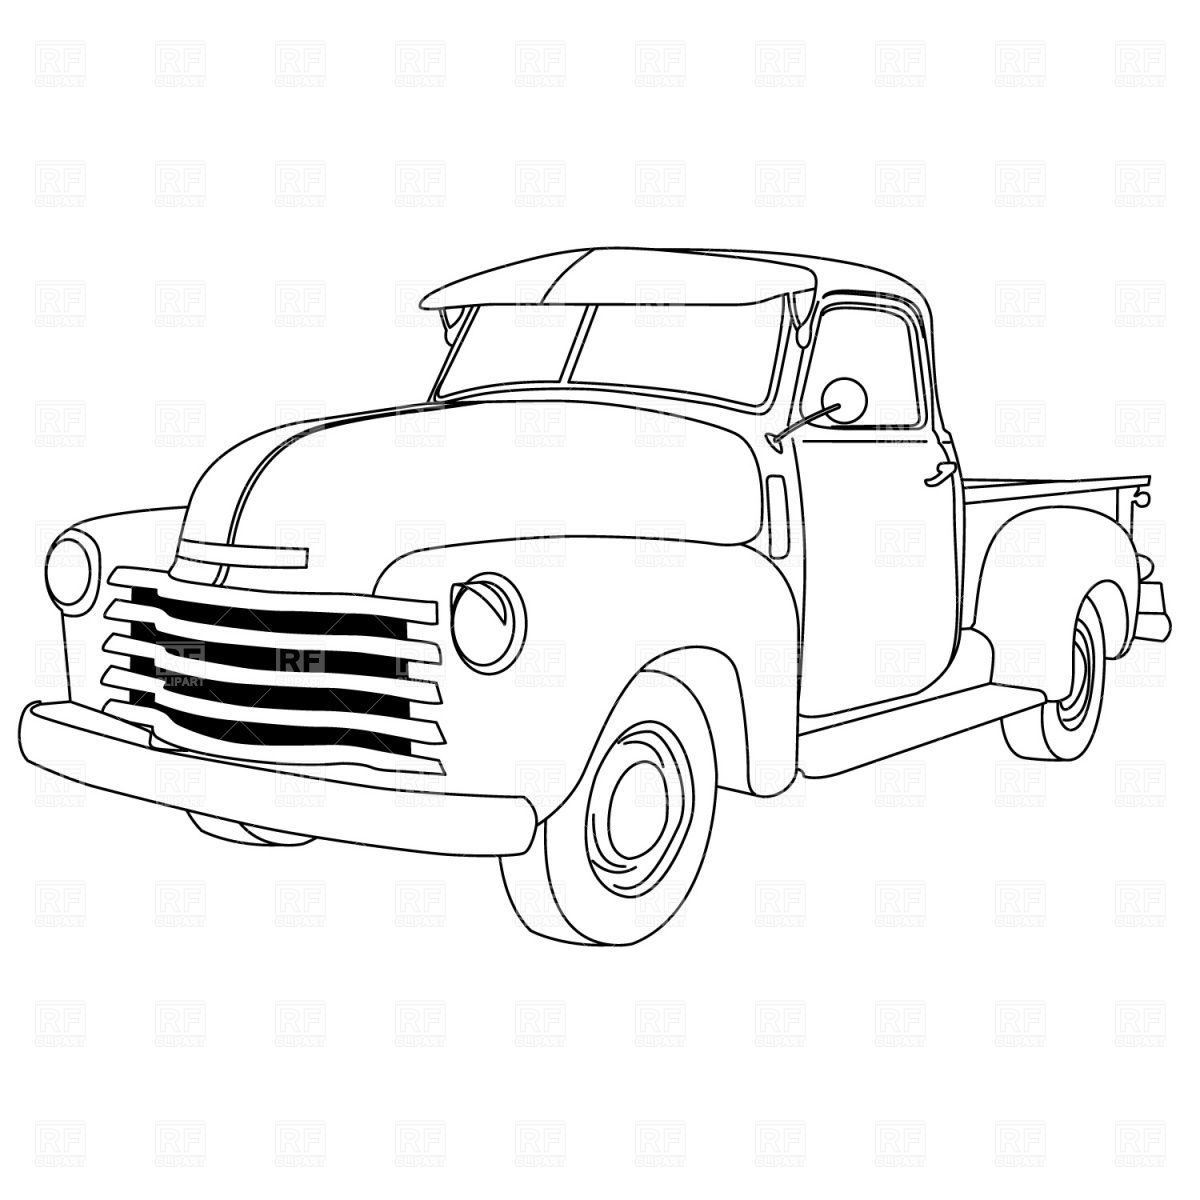 Old Trucks Coloring American Pick Up Truck Sketch Page